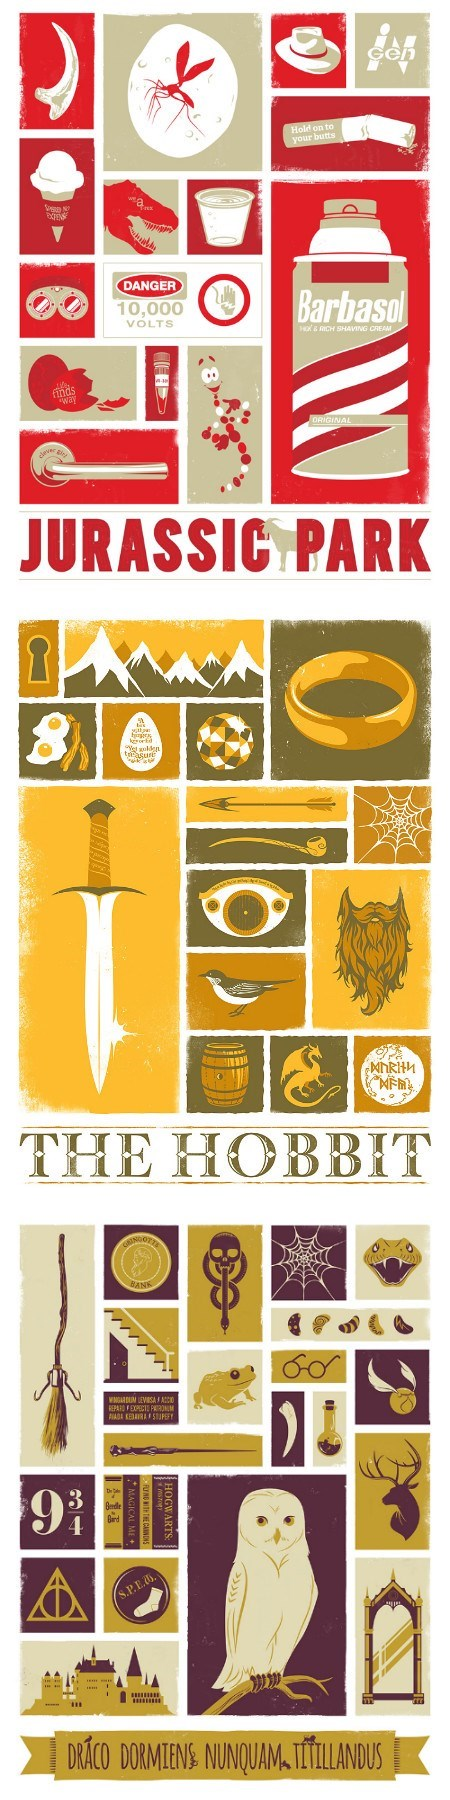 Harry Potter Lord of the Rings posters jurassic park - 7856022784